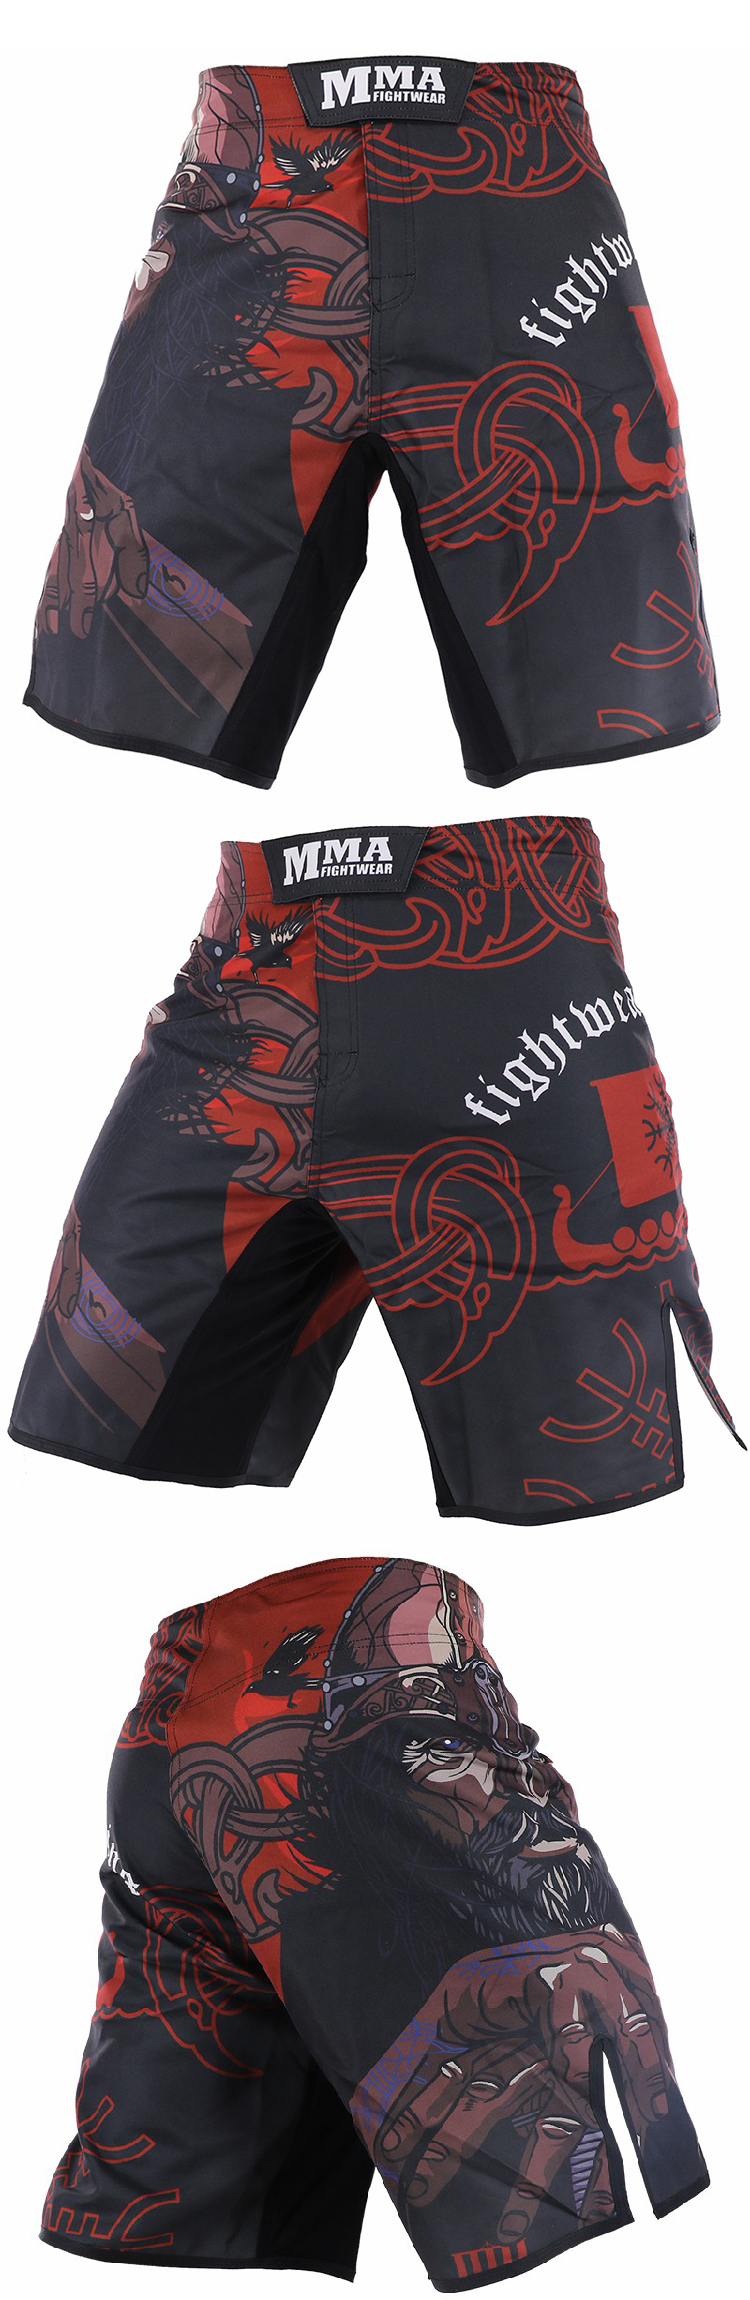 custom blank polyester sublimated free design mma fight shorts